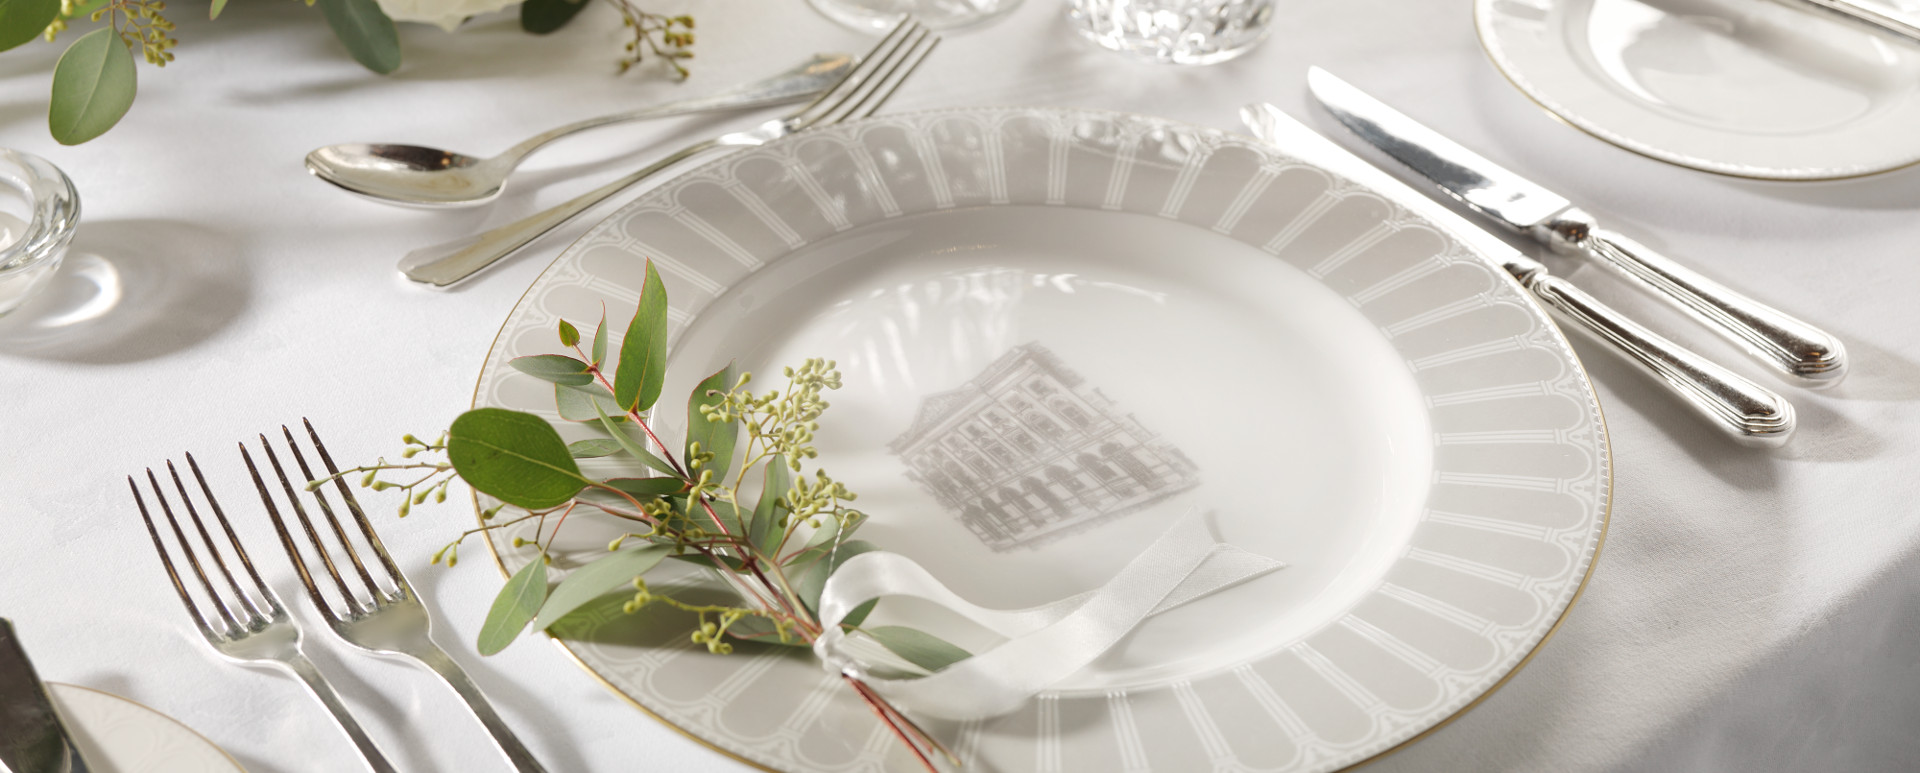 Banking Hall Wedding Place Setting